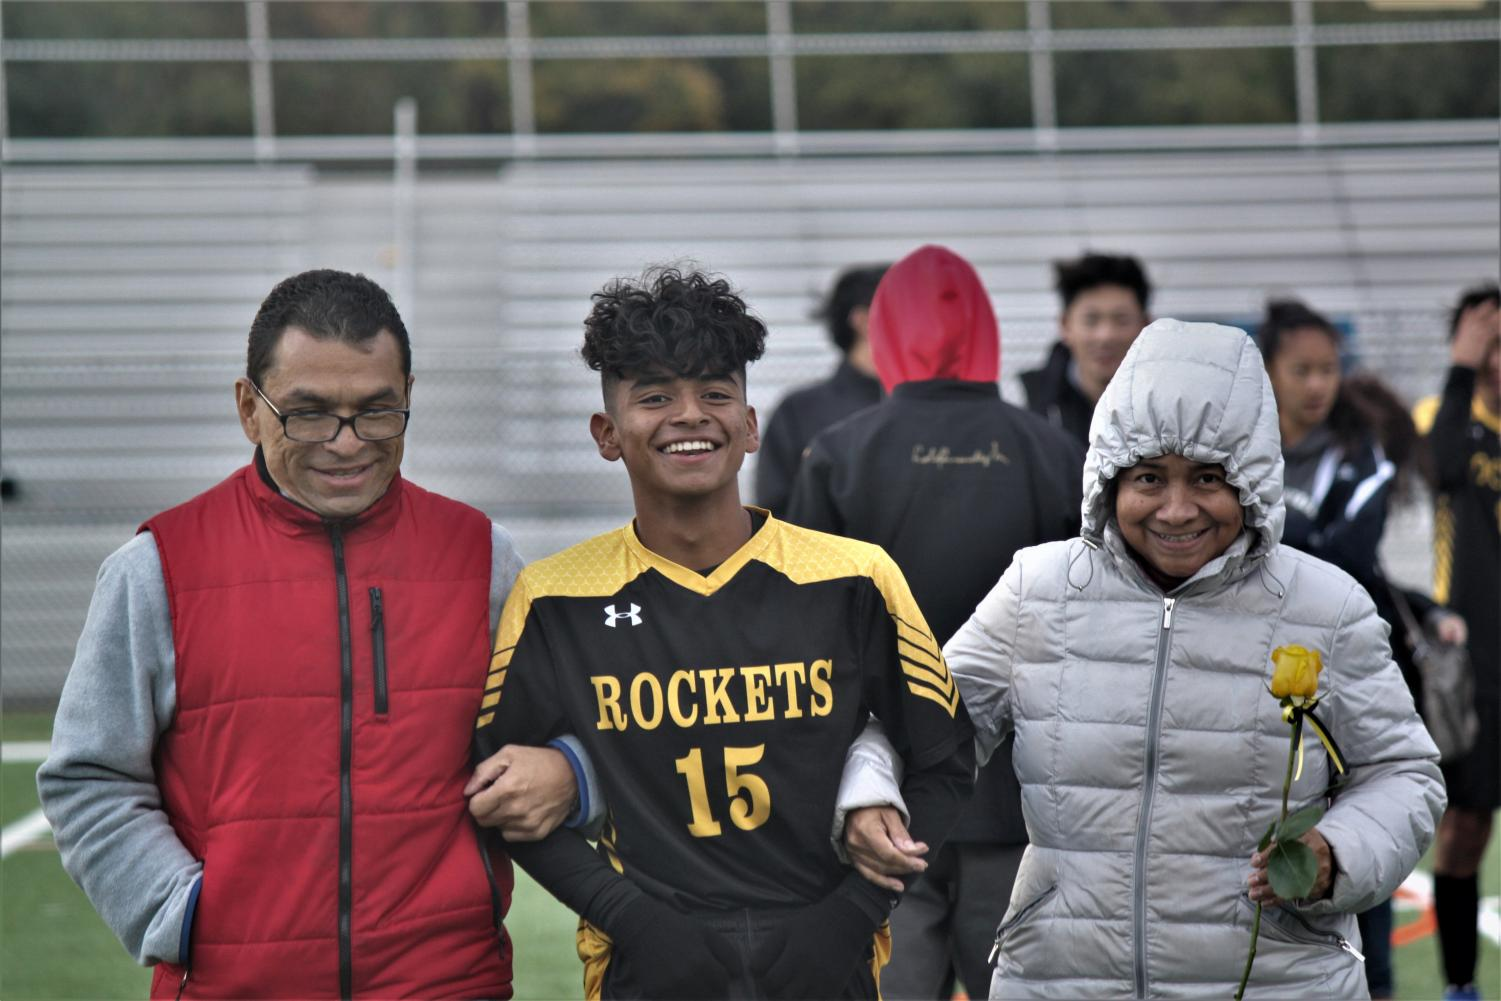 Senior Agustin Diaz walks down the field with his parents during senior night celebration.